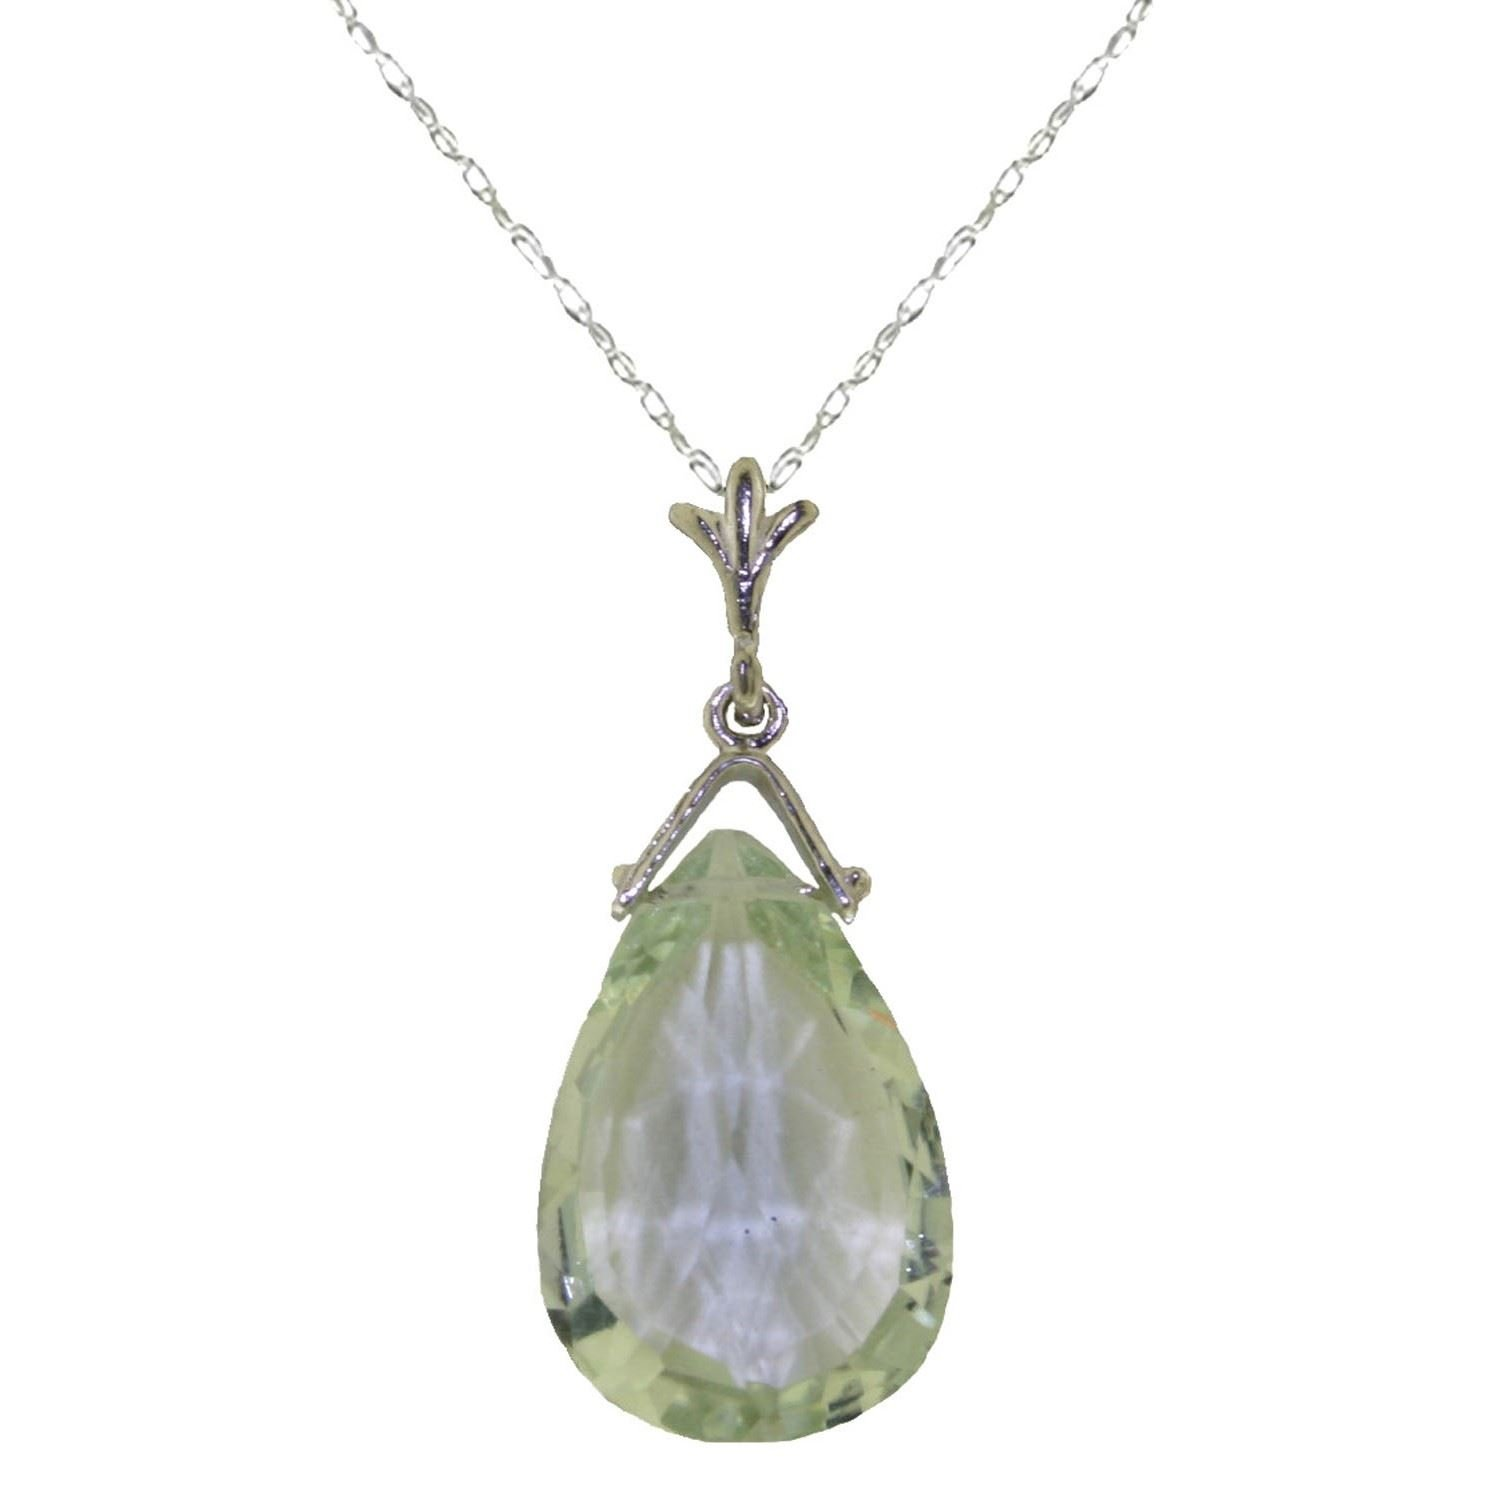 ALARRI 5.1 Carat 14K Solid White Gold Necklace Briolette Green Amethyst with 18 Inch Chain Length by ALARRI (Image #2)